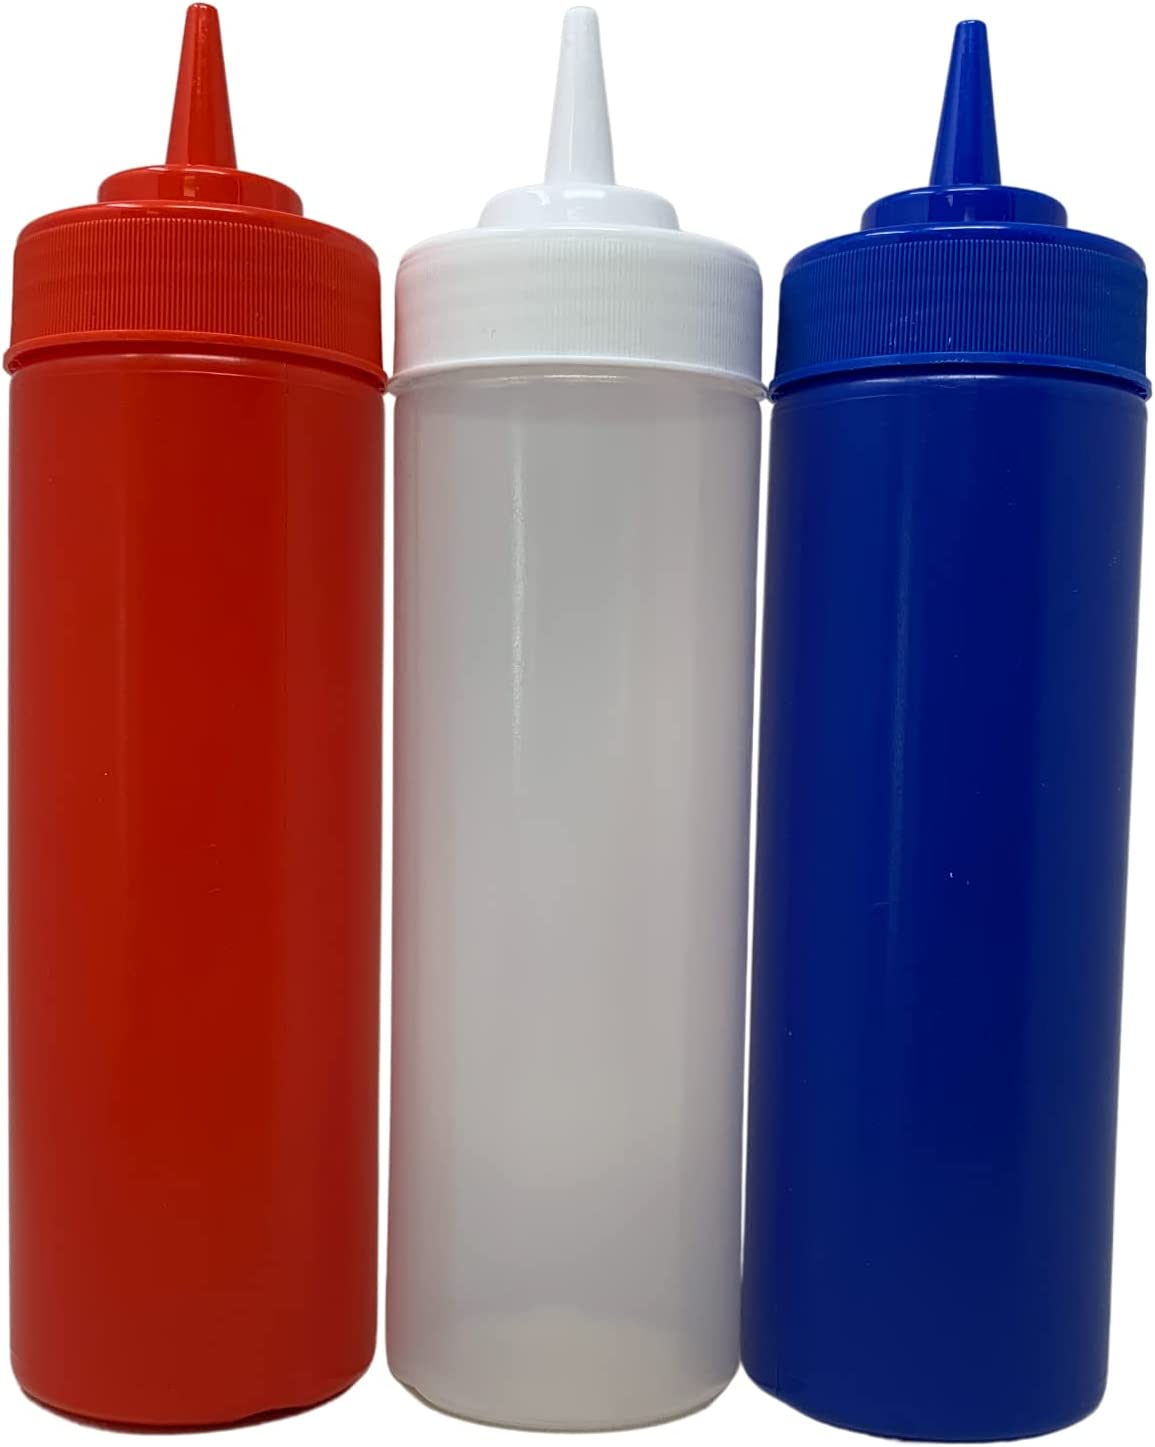 Squeeze Bottles in Patriotic Red White Condi for Colors Many popular brands and Recommendation Blue